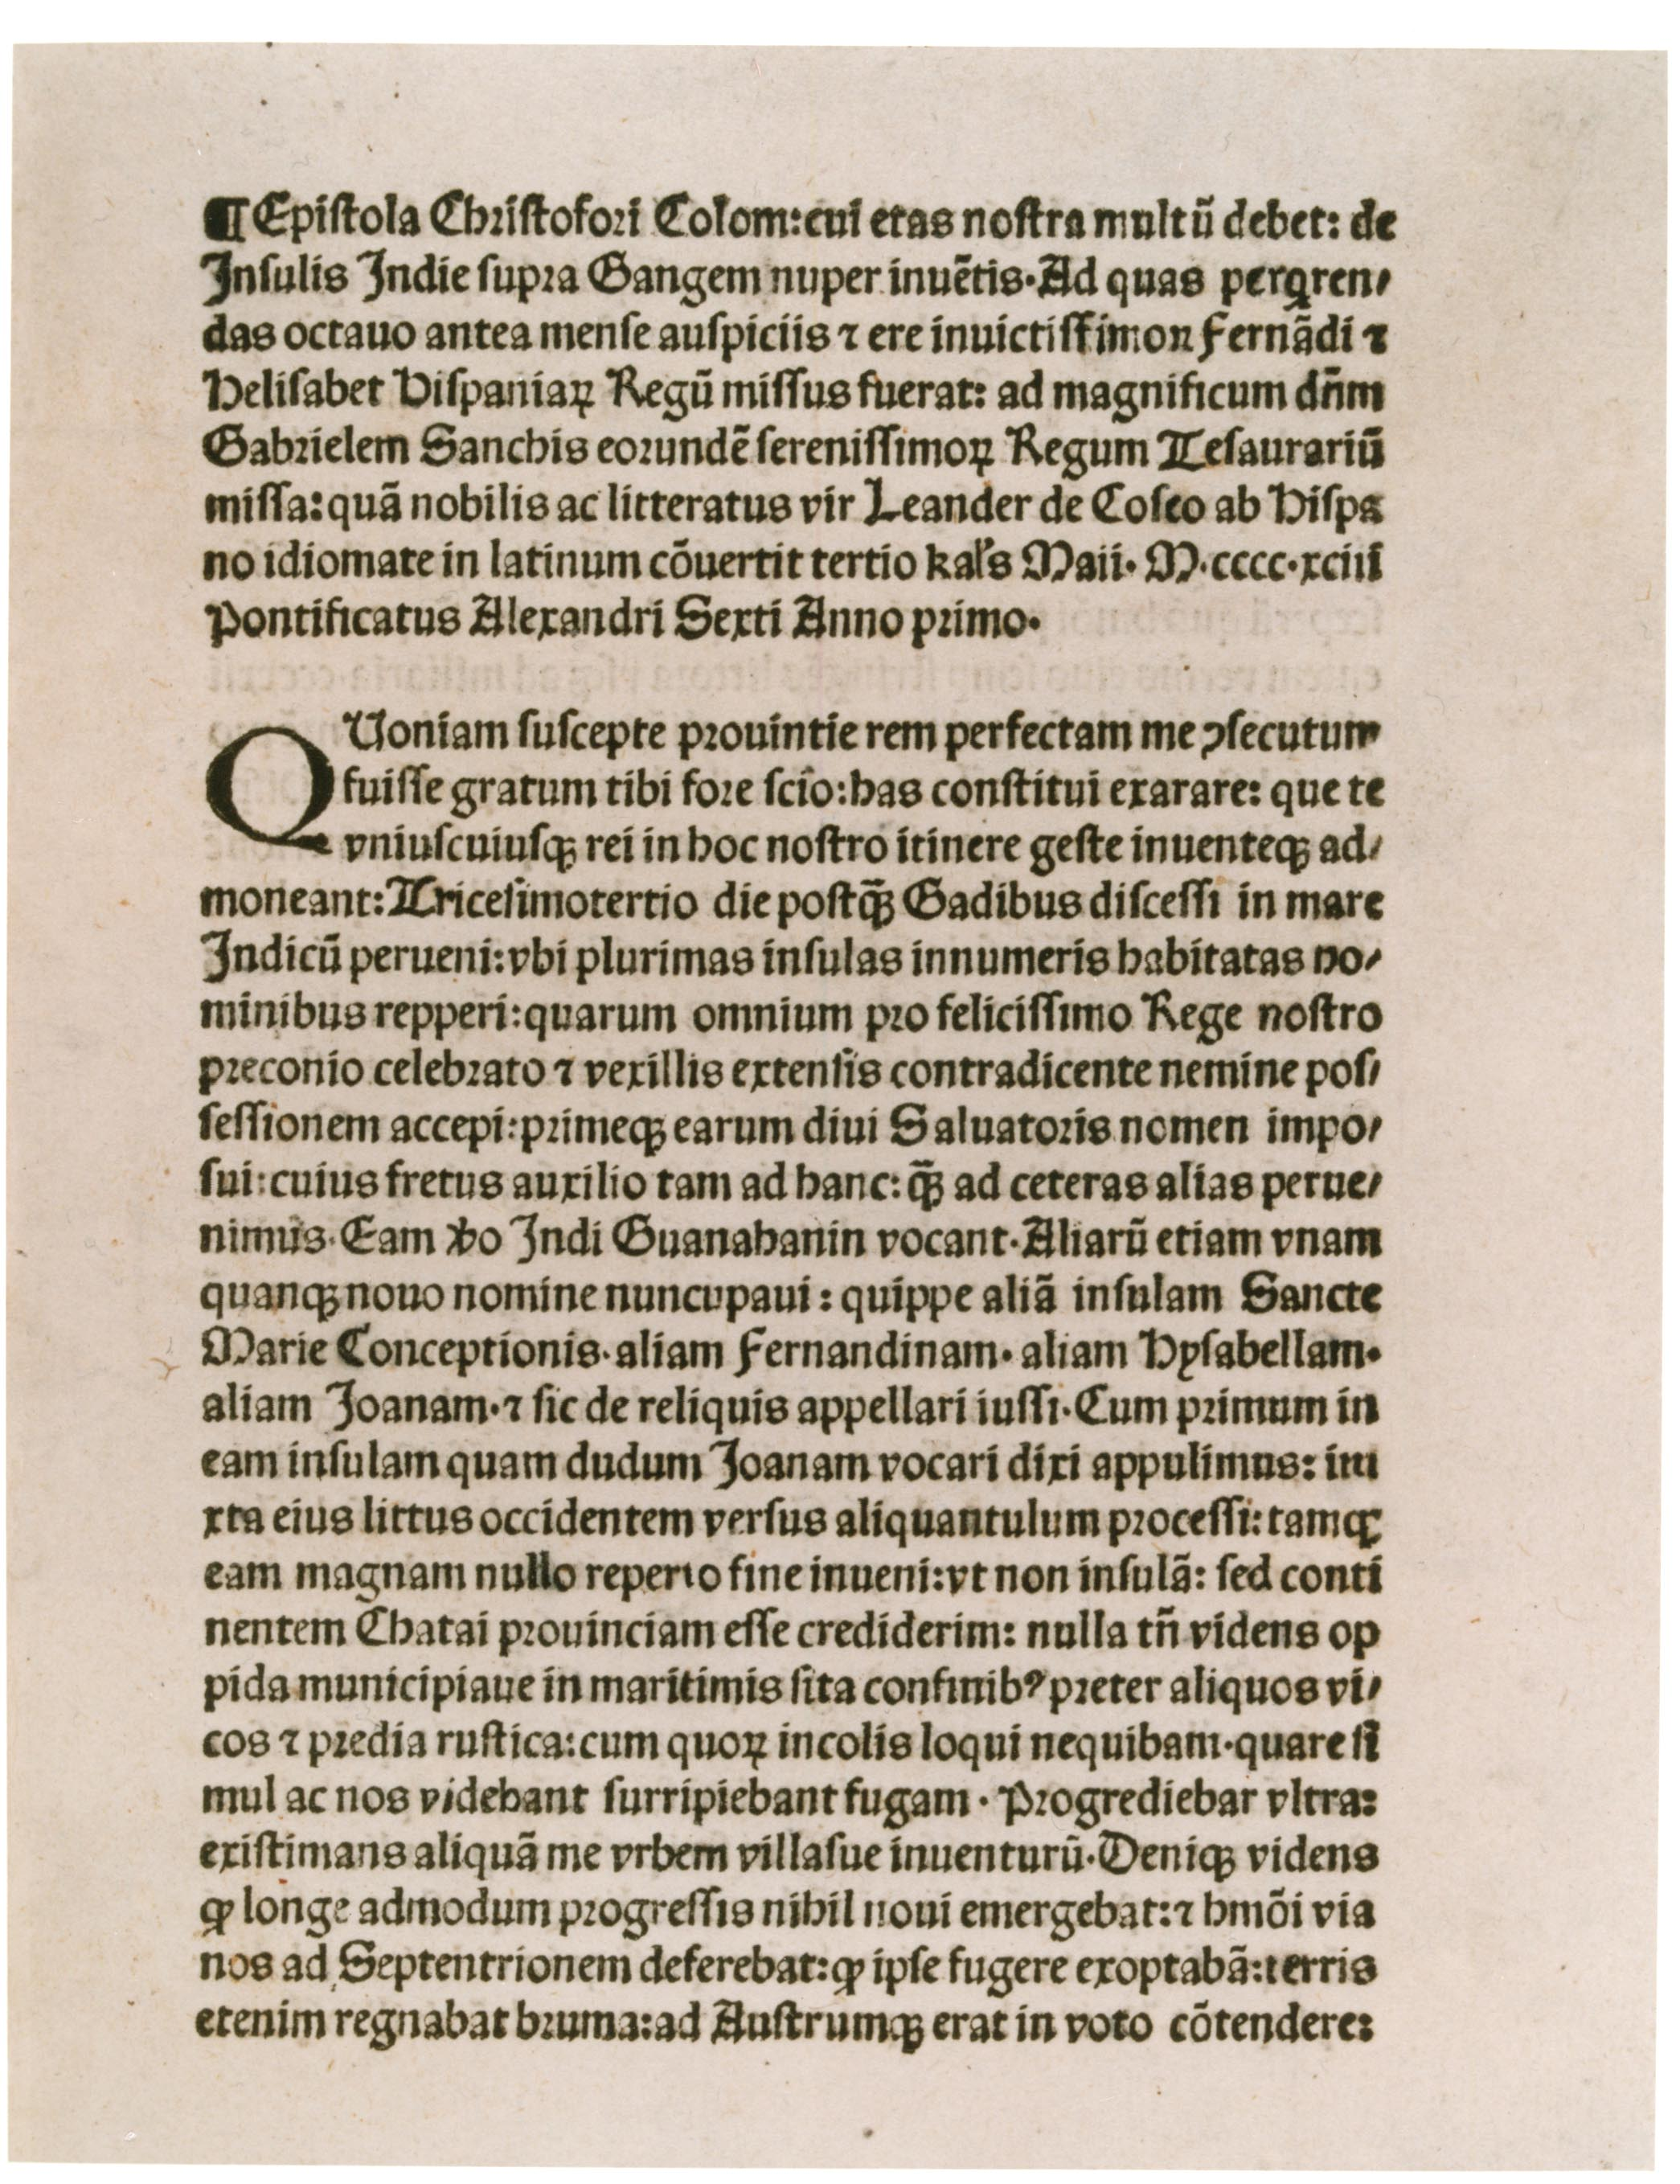 columbus reports on his first voyage 1493 the gilder lehrman christopher columbus s letter to ferdinand and isabella 1493 glc01427